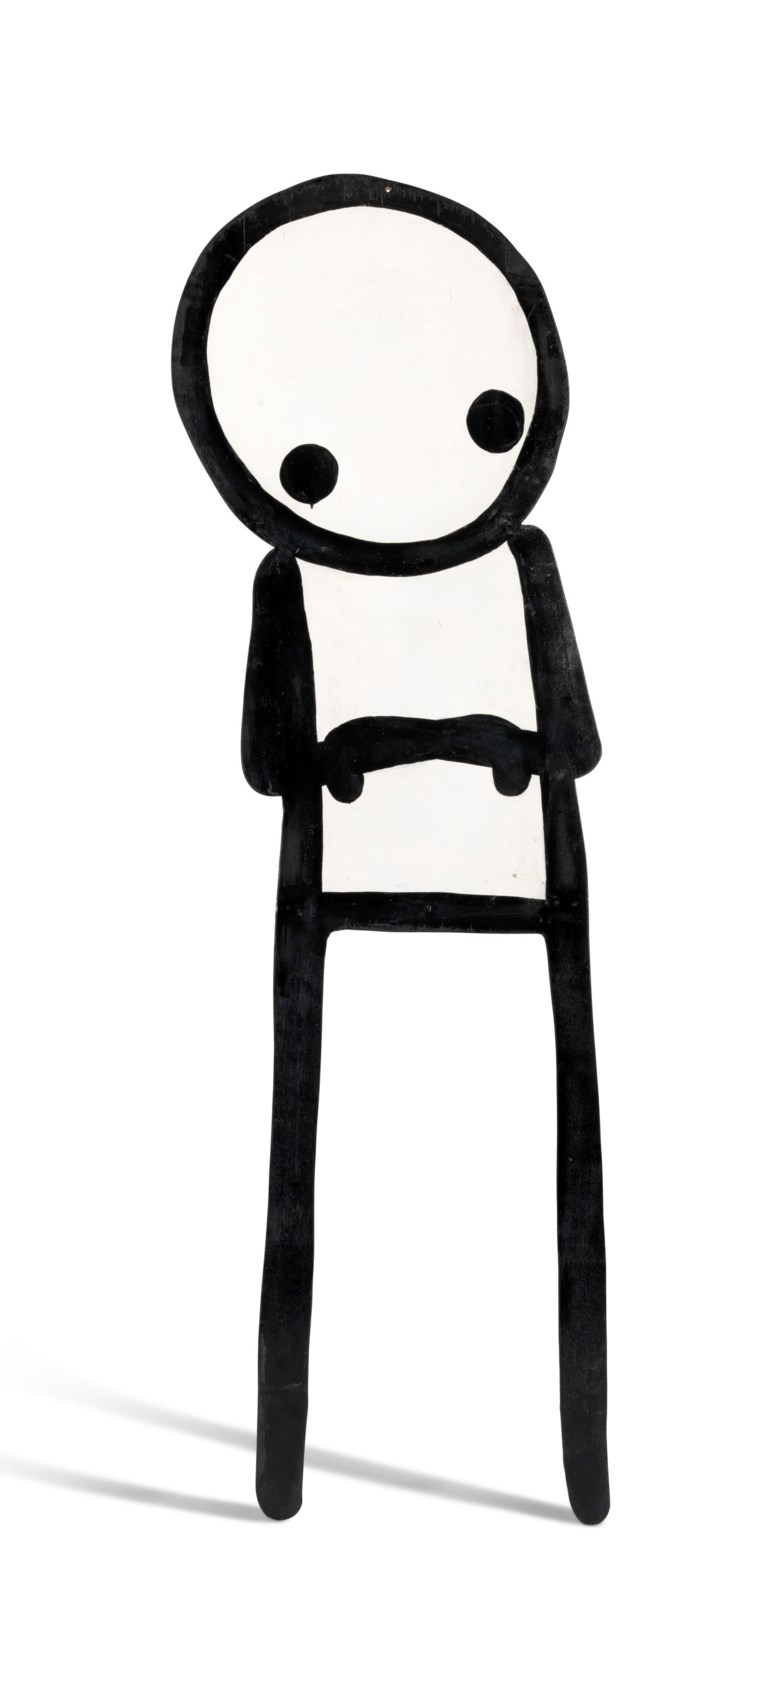 Stik (b. 1979), Up on the Roof, 2360 x 675 x 10 mm (overall). 2360 x 675 x 10  mm (overall). Sold for £150,000 on 20 September 2018 at Christie's in London, a record price for a work by the artist.